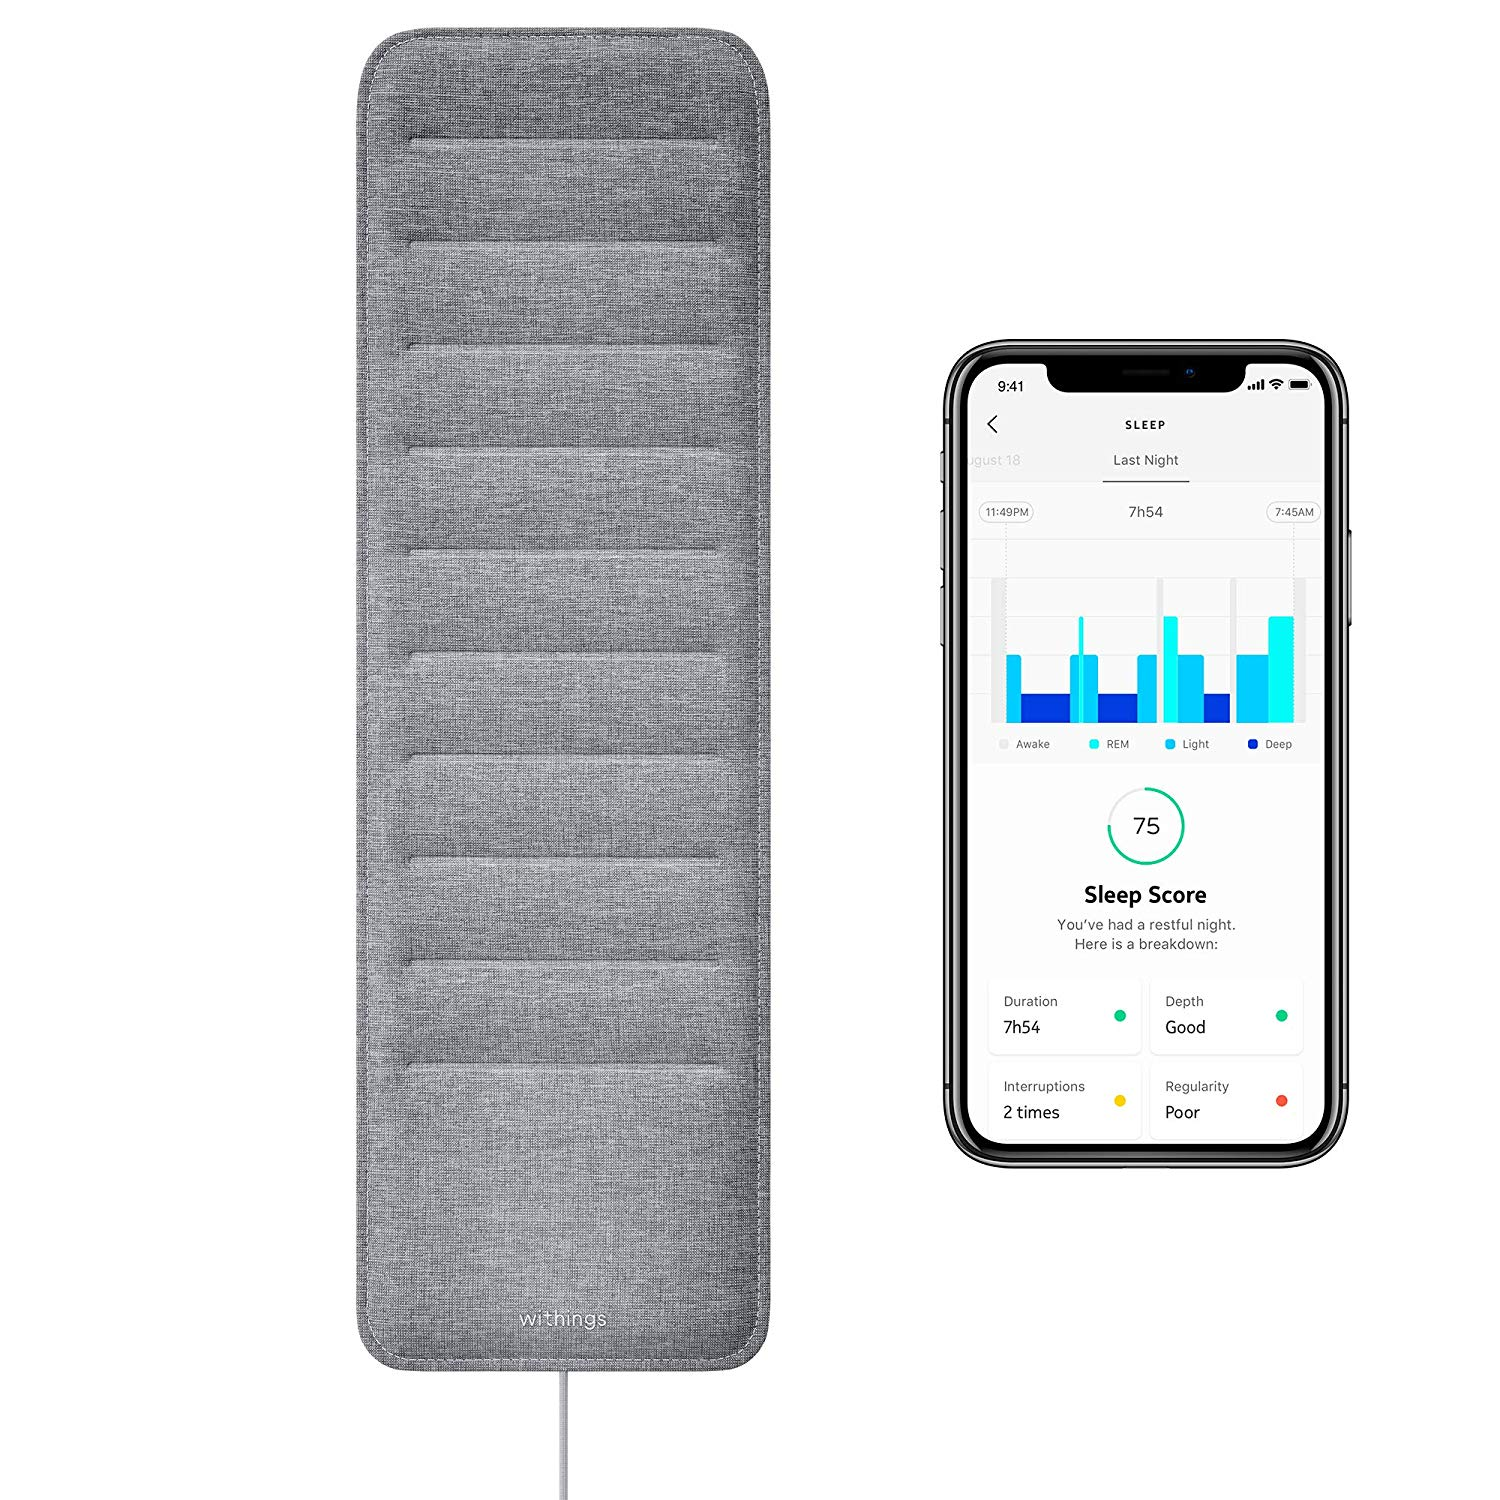 Withings Best Sleep Tracker Review by www.snoremagazine.com